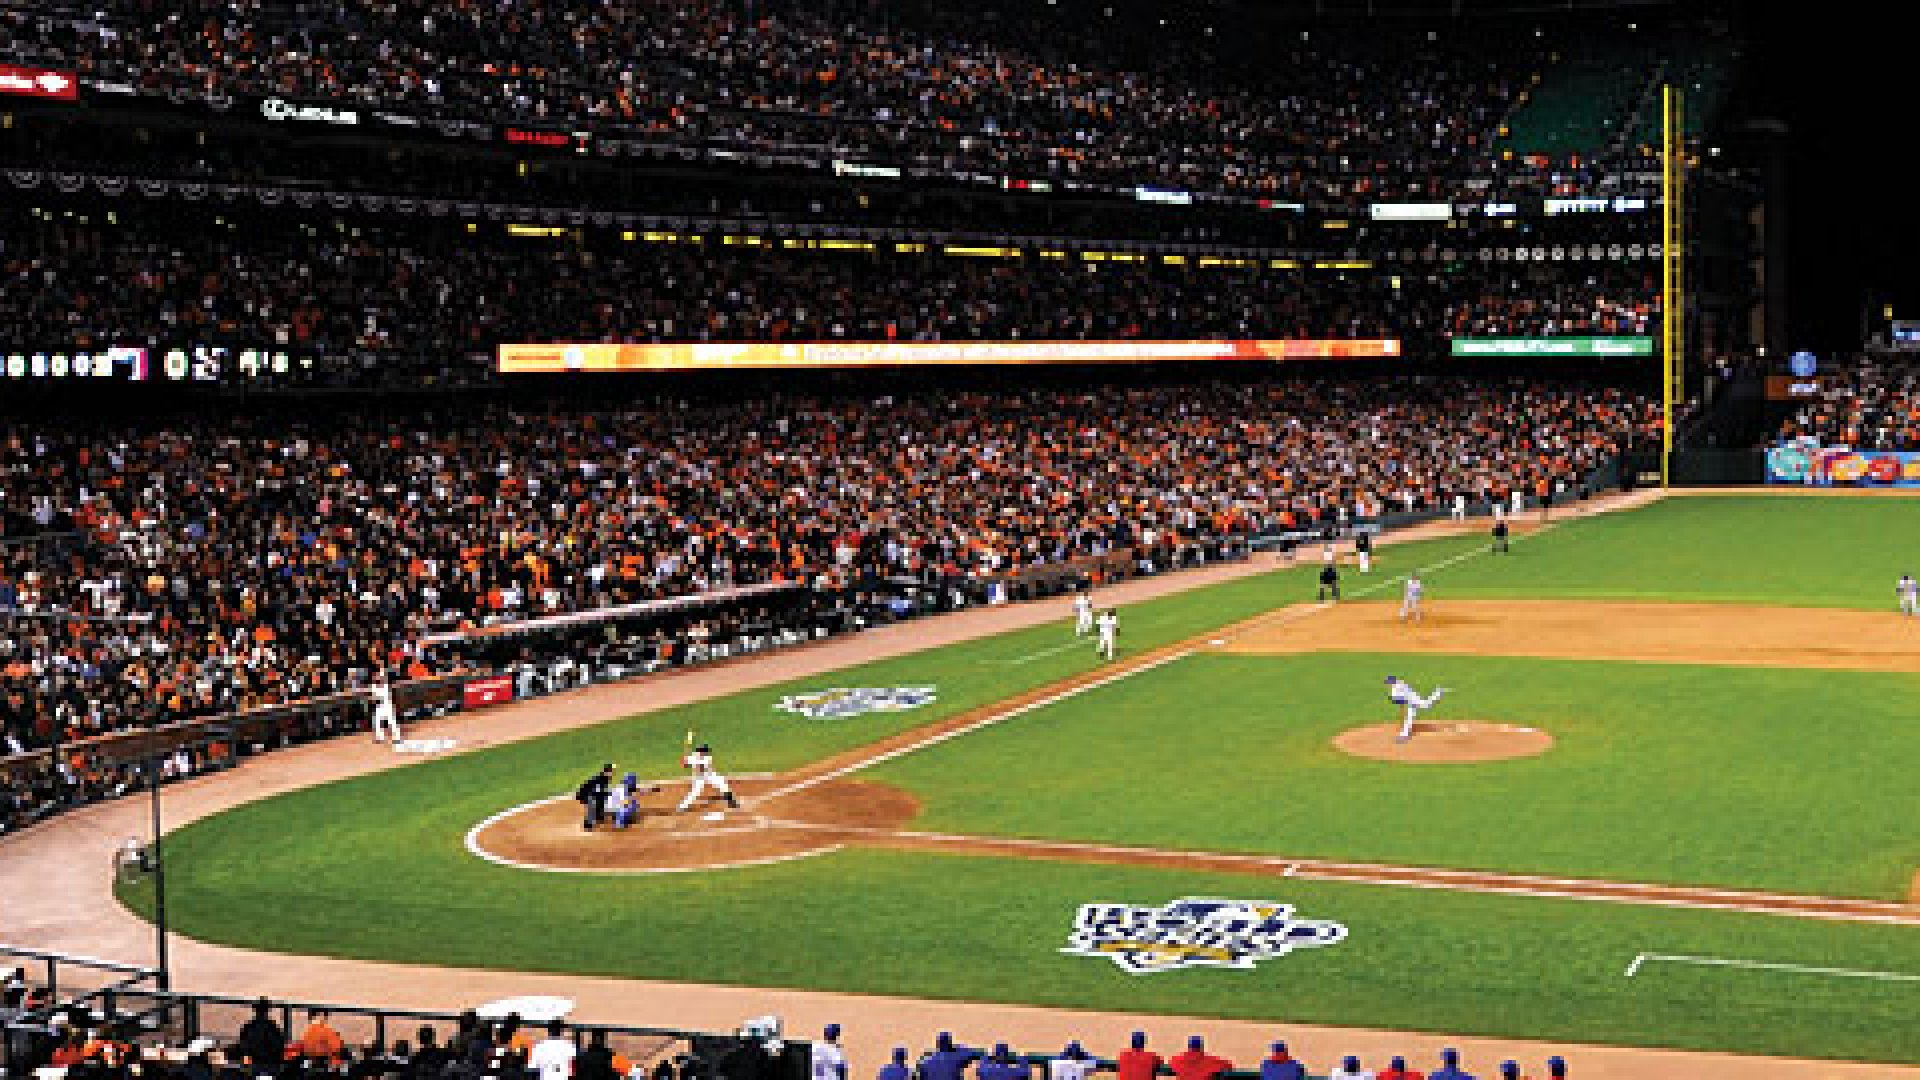 A general view of Game Two of the 2010 World Series between the Texas Rangers and San Francisco Giants at AT&T Park on Thursday, October 28, 2010 in San Francisco, California.